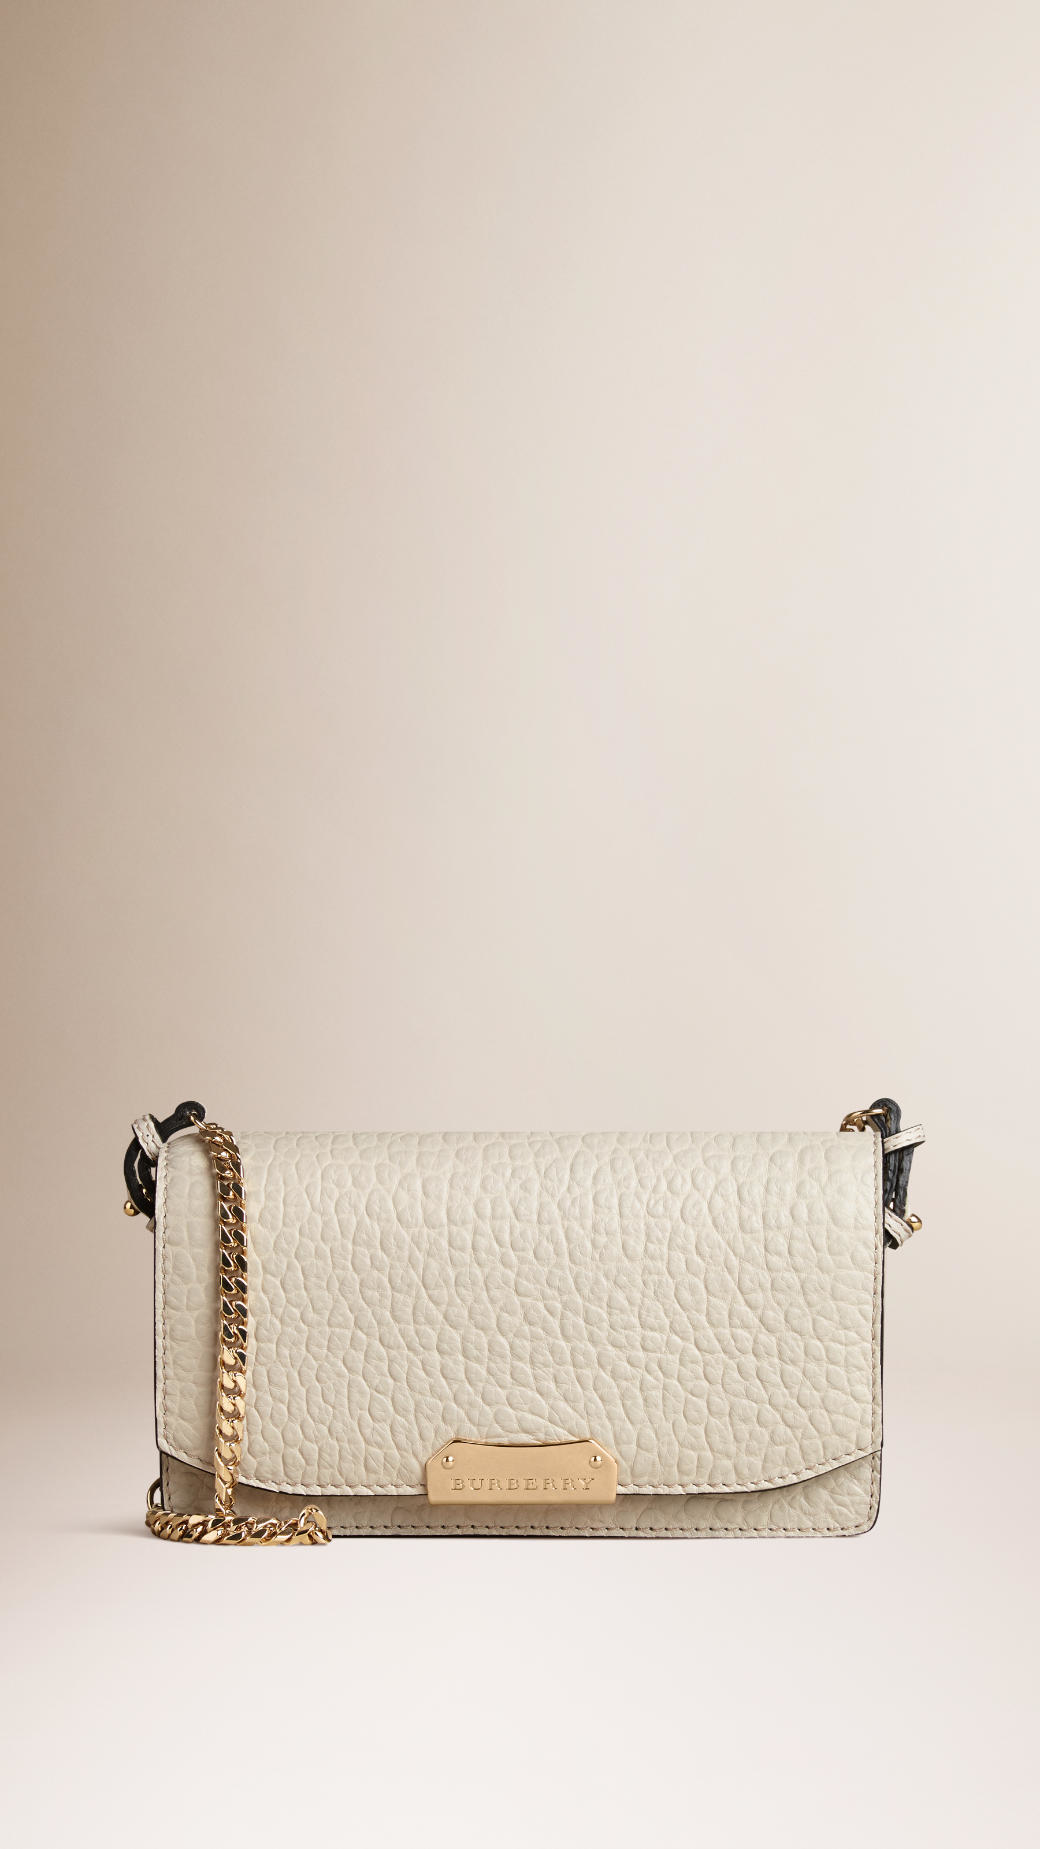 1d72acf71806 Lyst - Burberry Small Signature Grain Leather Clutch Bag With Chain ...